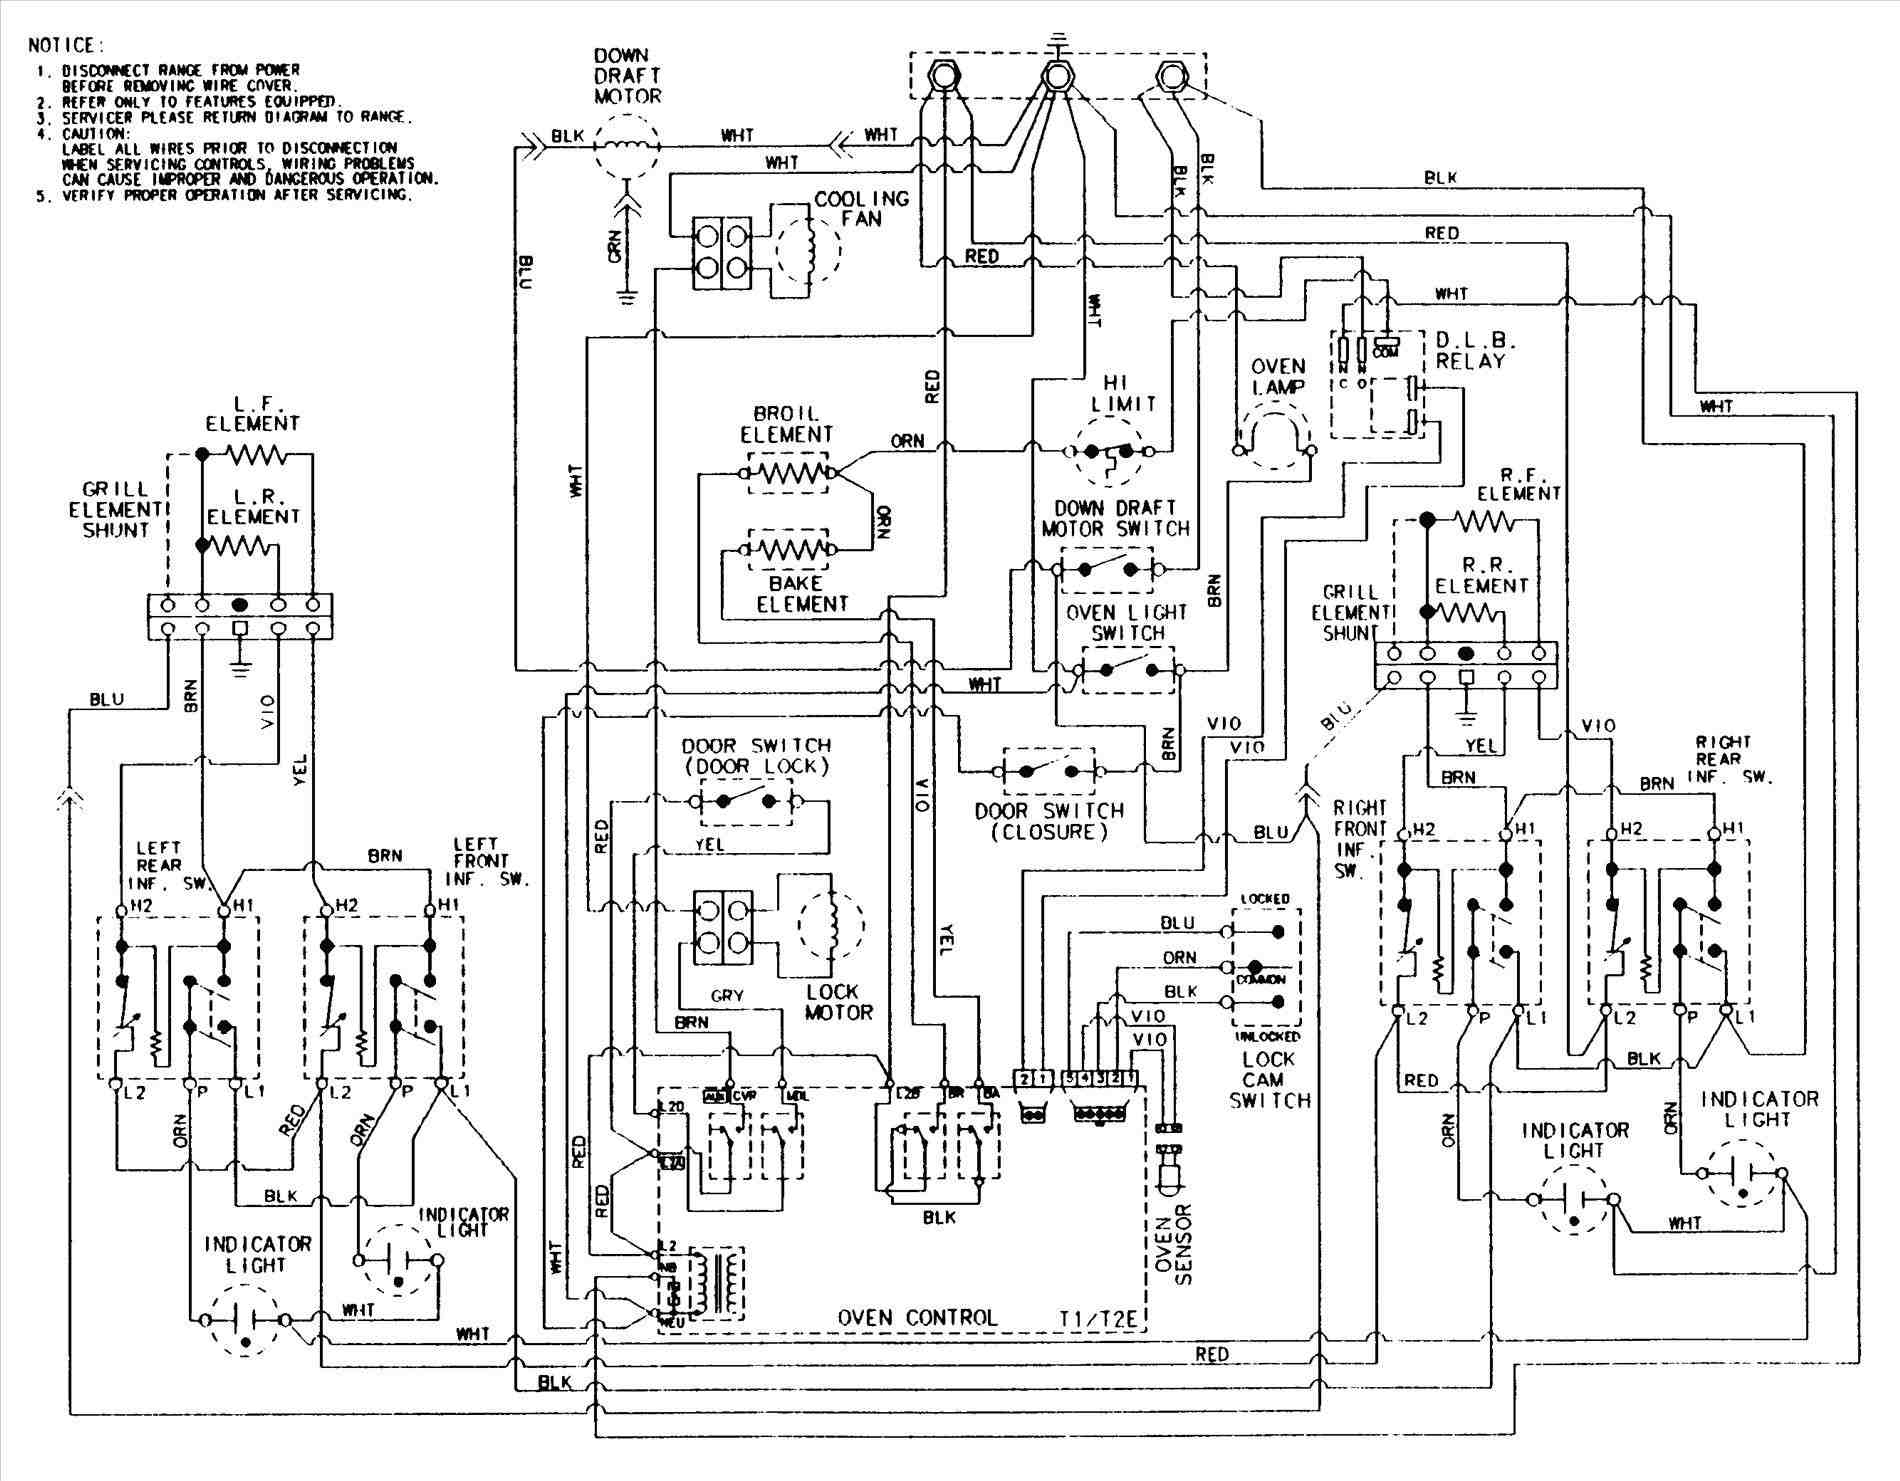 ge wall oven wiring diagram free download riser drawing at getdrawings    free       download     riser drawing at getdrawings    free       download